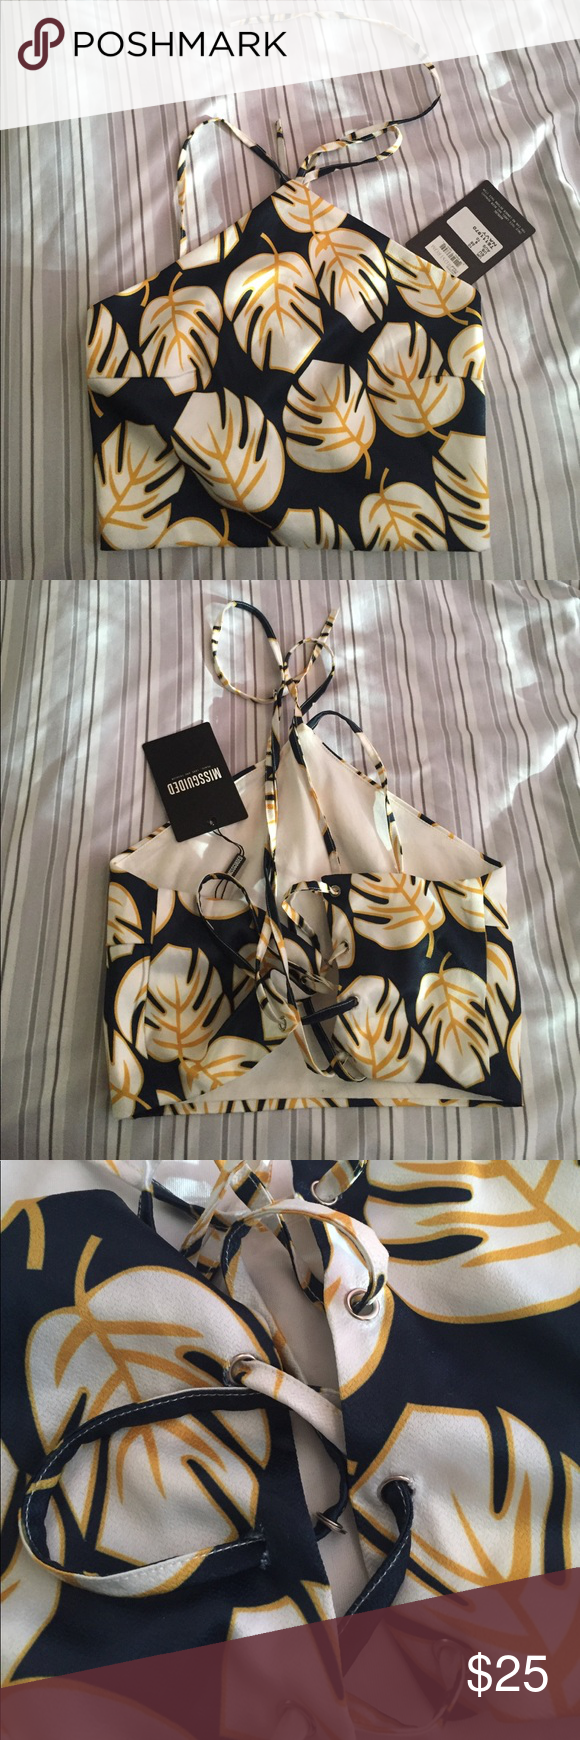 Tropical halter crop top Brand new! Purchased from Nordstrom and didn't notice until now but the 3rd ring is unattached (it's still there and is still functional). Size US 6 but it's adjustable so it can fit various sizes Missguided Tops Crop Tops